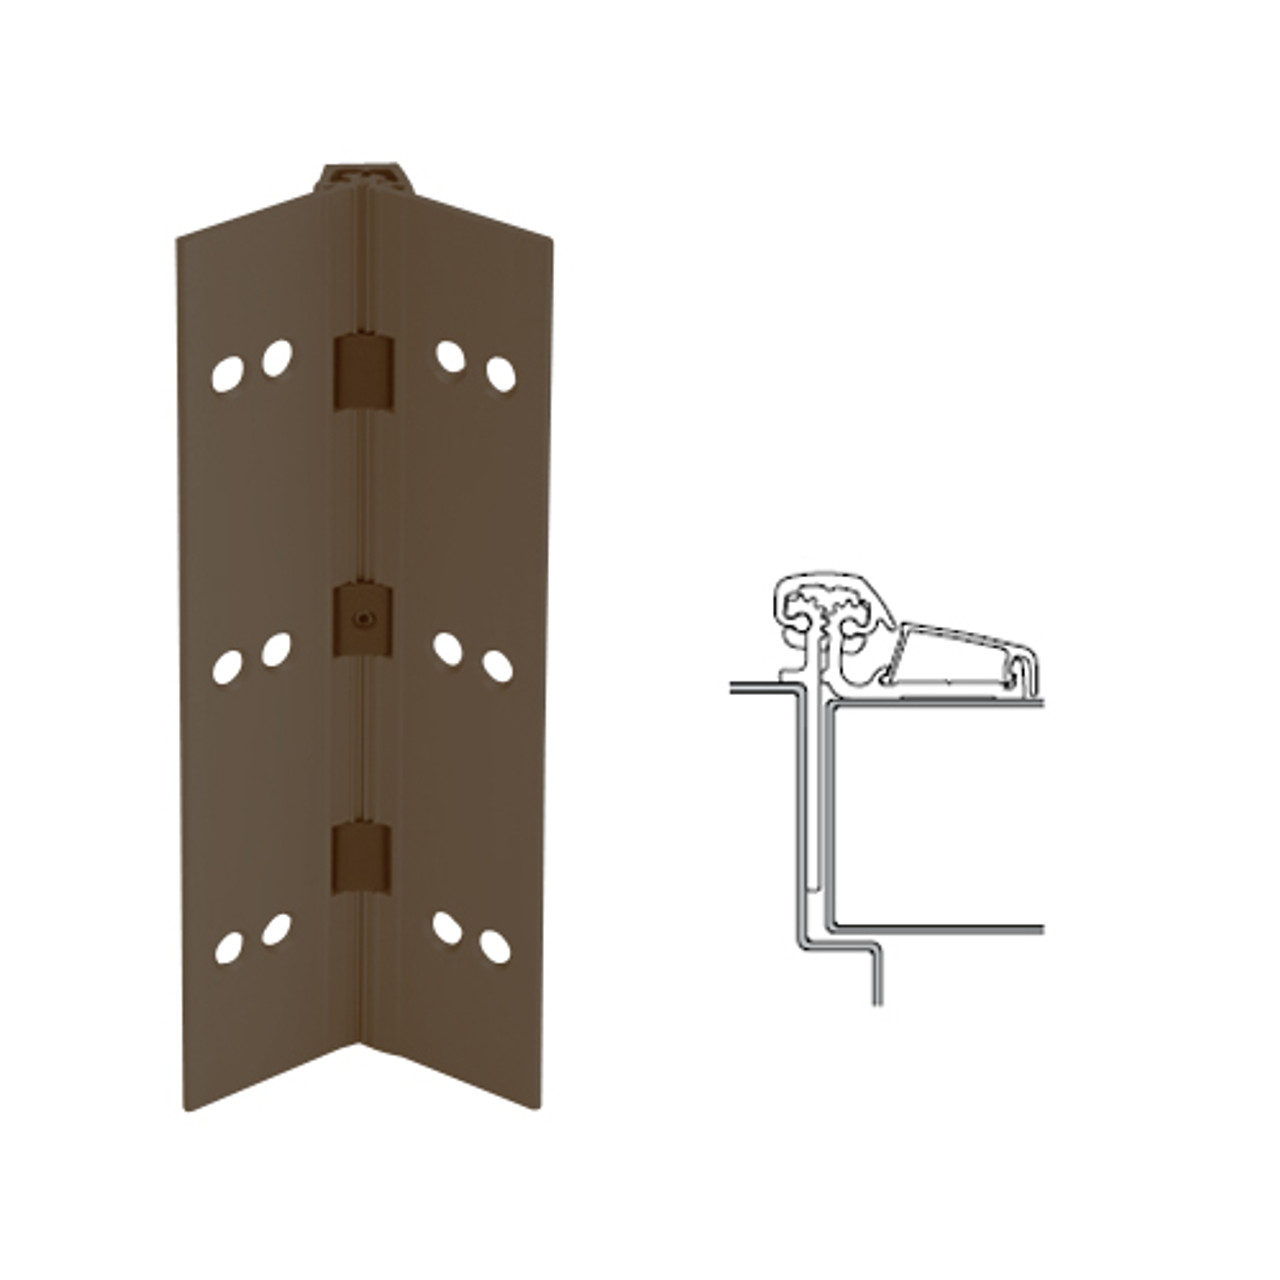 053XY-313AN-83-WD IVES Adjustable Half Surface Continuous Geared Hinges with Wood Screws in Dark Bronze Anodized